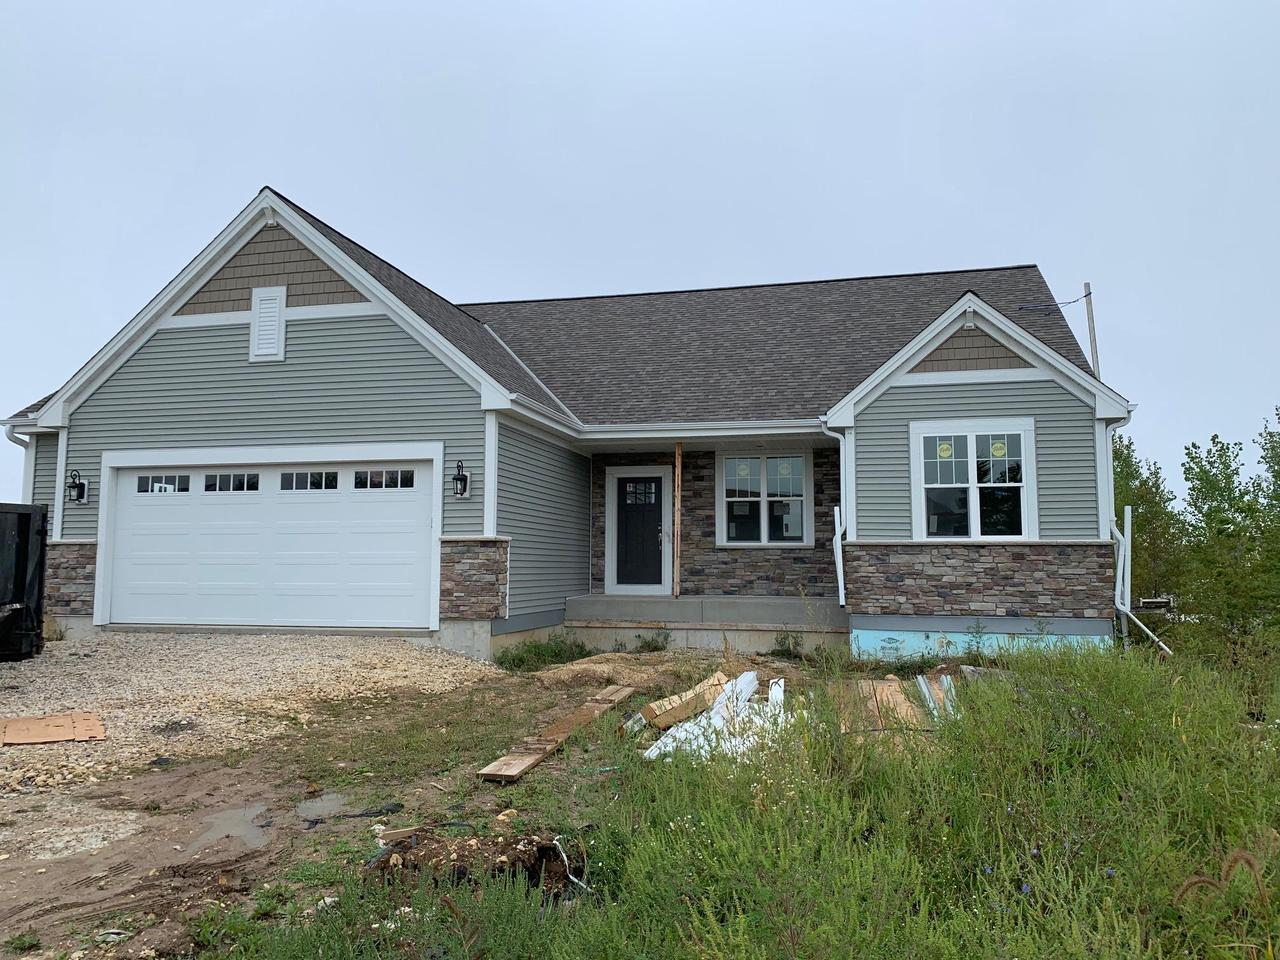 NEW CONSTRUCTION by Stepping Stone Homes. $2500 buyer closing cost credit OR credit towards a patio/deck for an accepted offer by 10/31! This AVERY model is located in  Western Hills. You'll love the open concept with full basement including walk out patio door and full sized windows. Superior quality, 2x6 exterior framing, 8 foot garage door, electric fireplace & more! Lots of upgrades like soft close dovetail cabinetry, quartz/marble counter tops, double sinks in the bathrooms, upgraded flooring throughout and so much more. Don't forget about all the Smart Home Technology, including integrated lighting, door locks, ecobee thermostat, video door bell, Lift Master garage door opener, Samsung Connected Touch Screen Family Hub refrigerator, all of which you can control from your phone! Conc